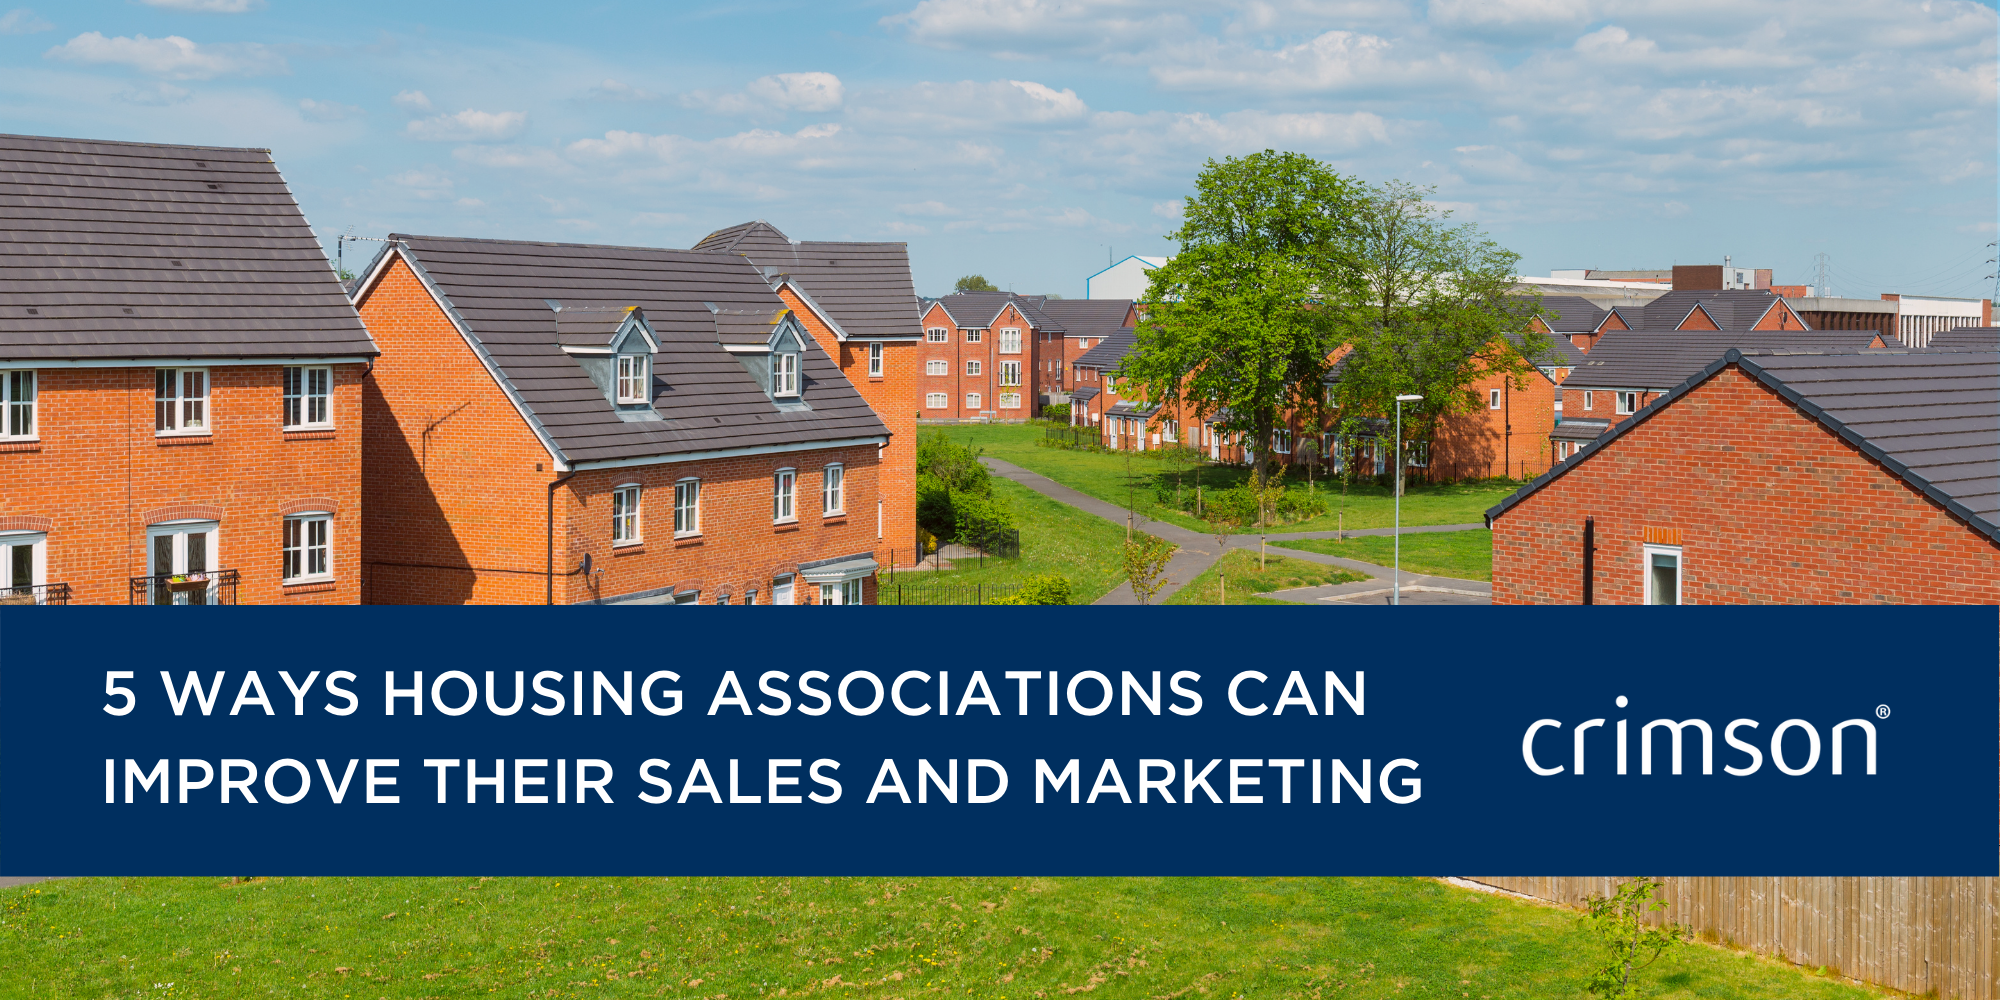 5 ways housing associations can improve their sales and marketing